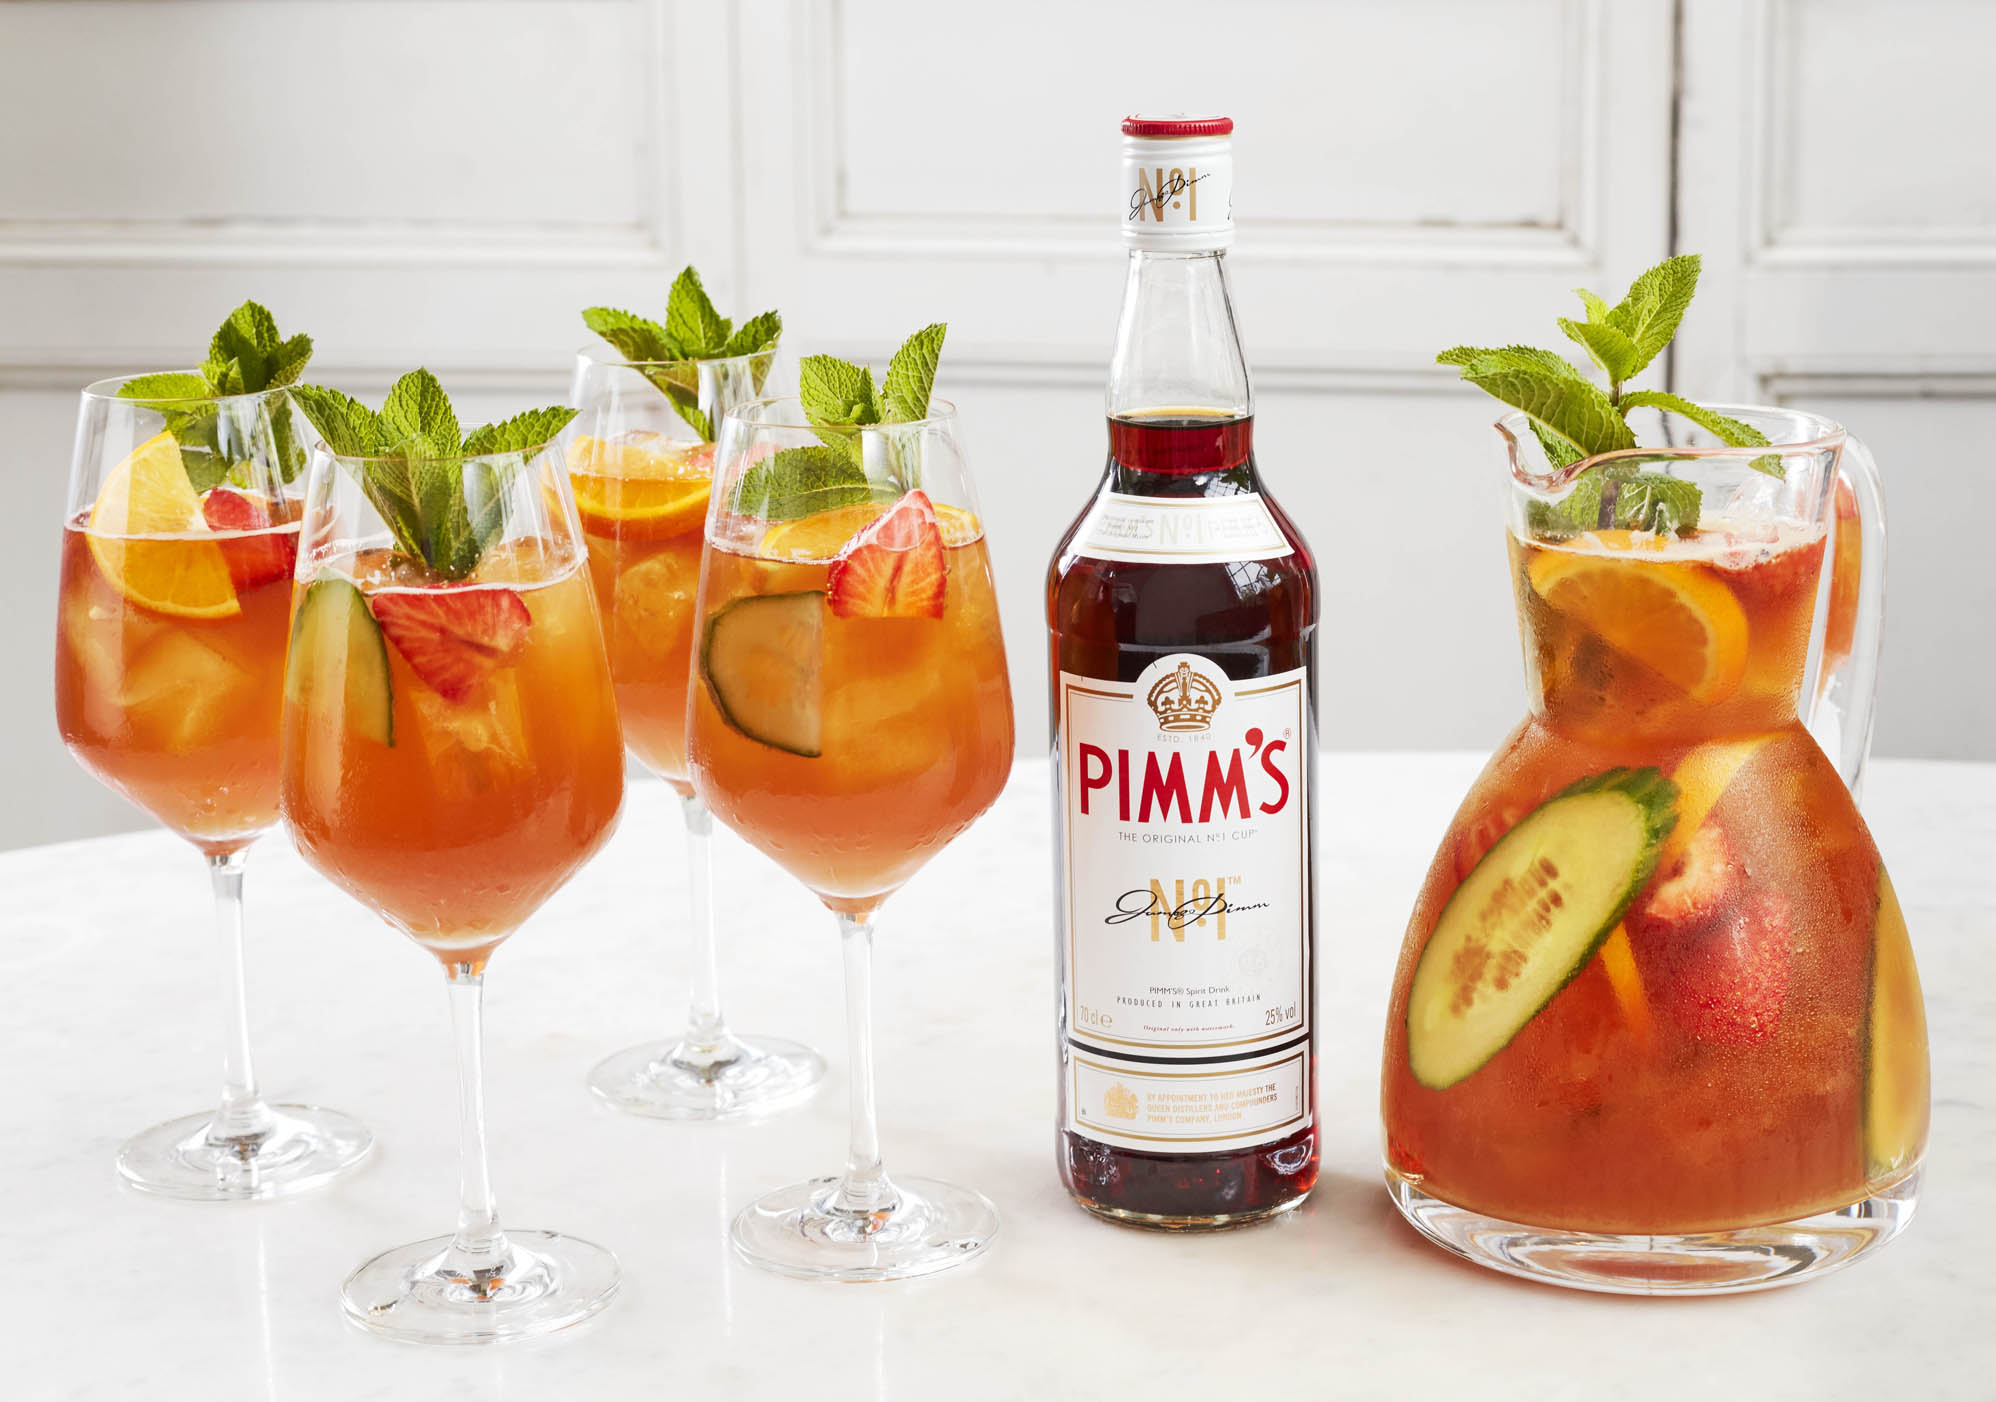 Pic of Pimm's jug and glasses